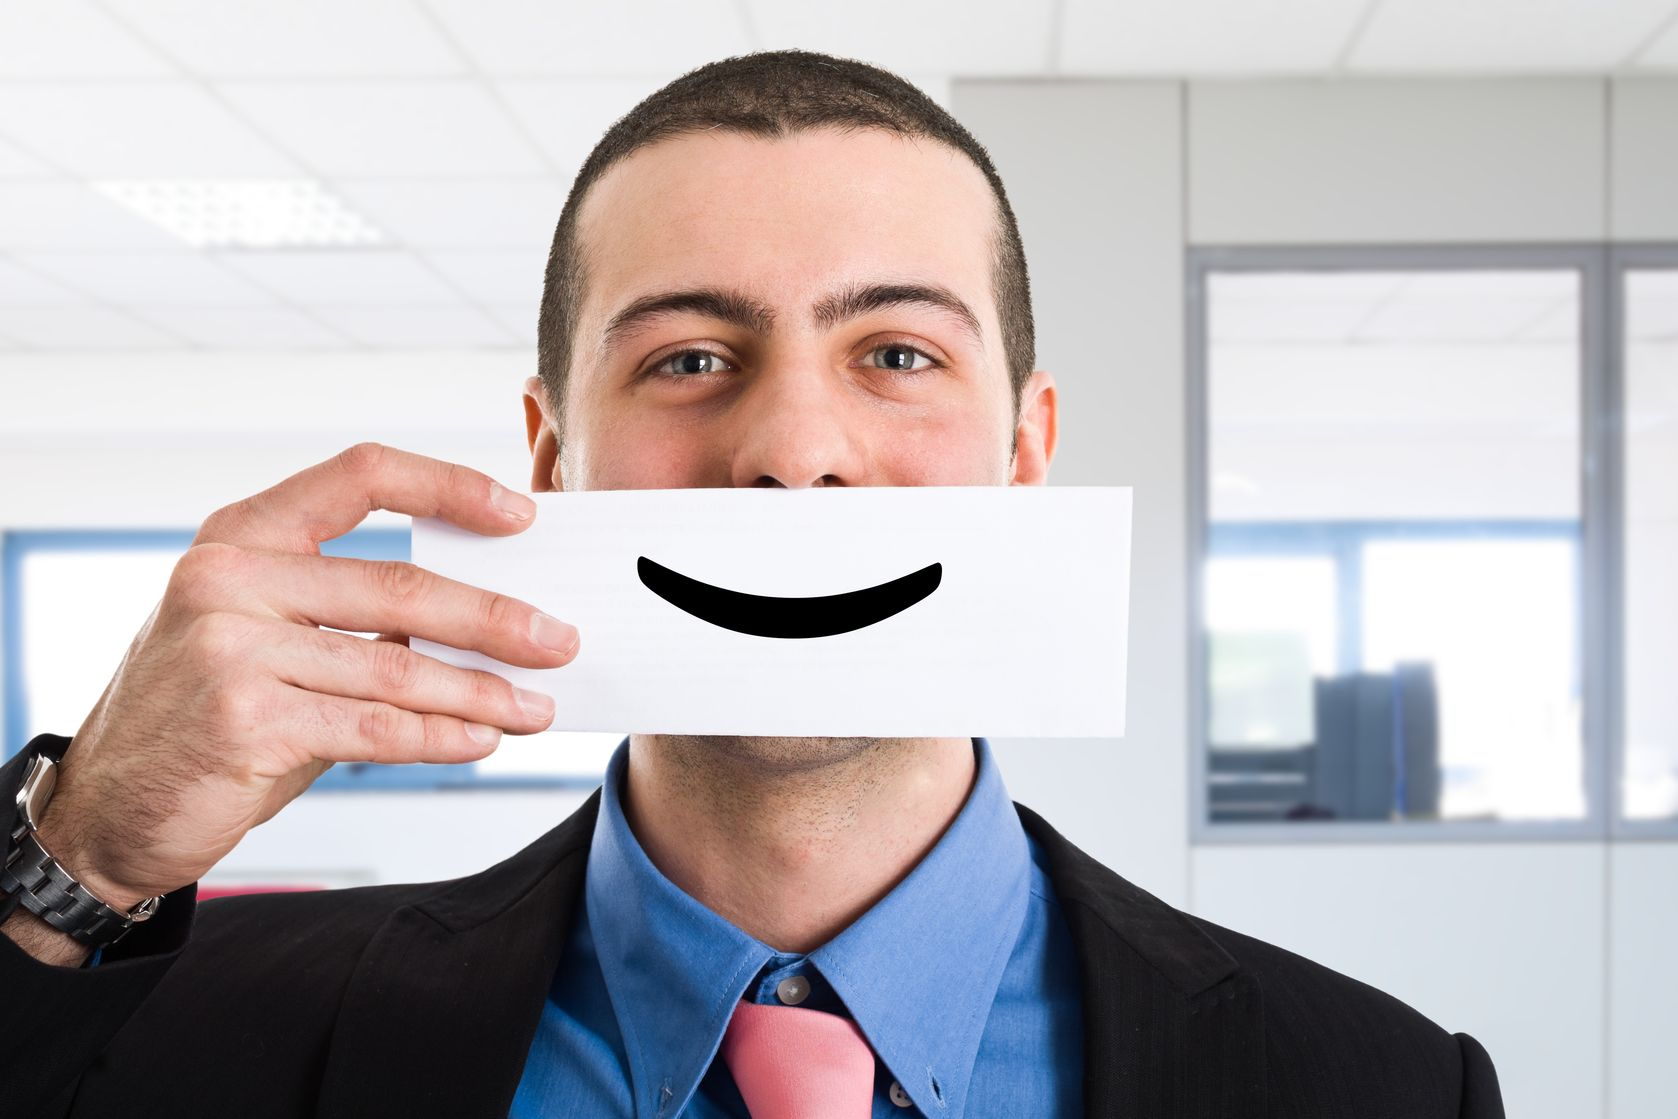 Customer Service Essential: Smiling Like You Mean It!